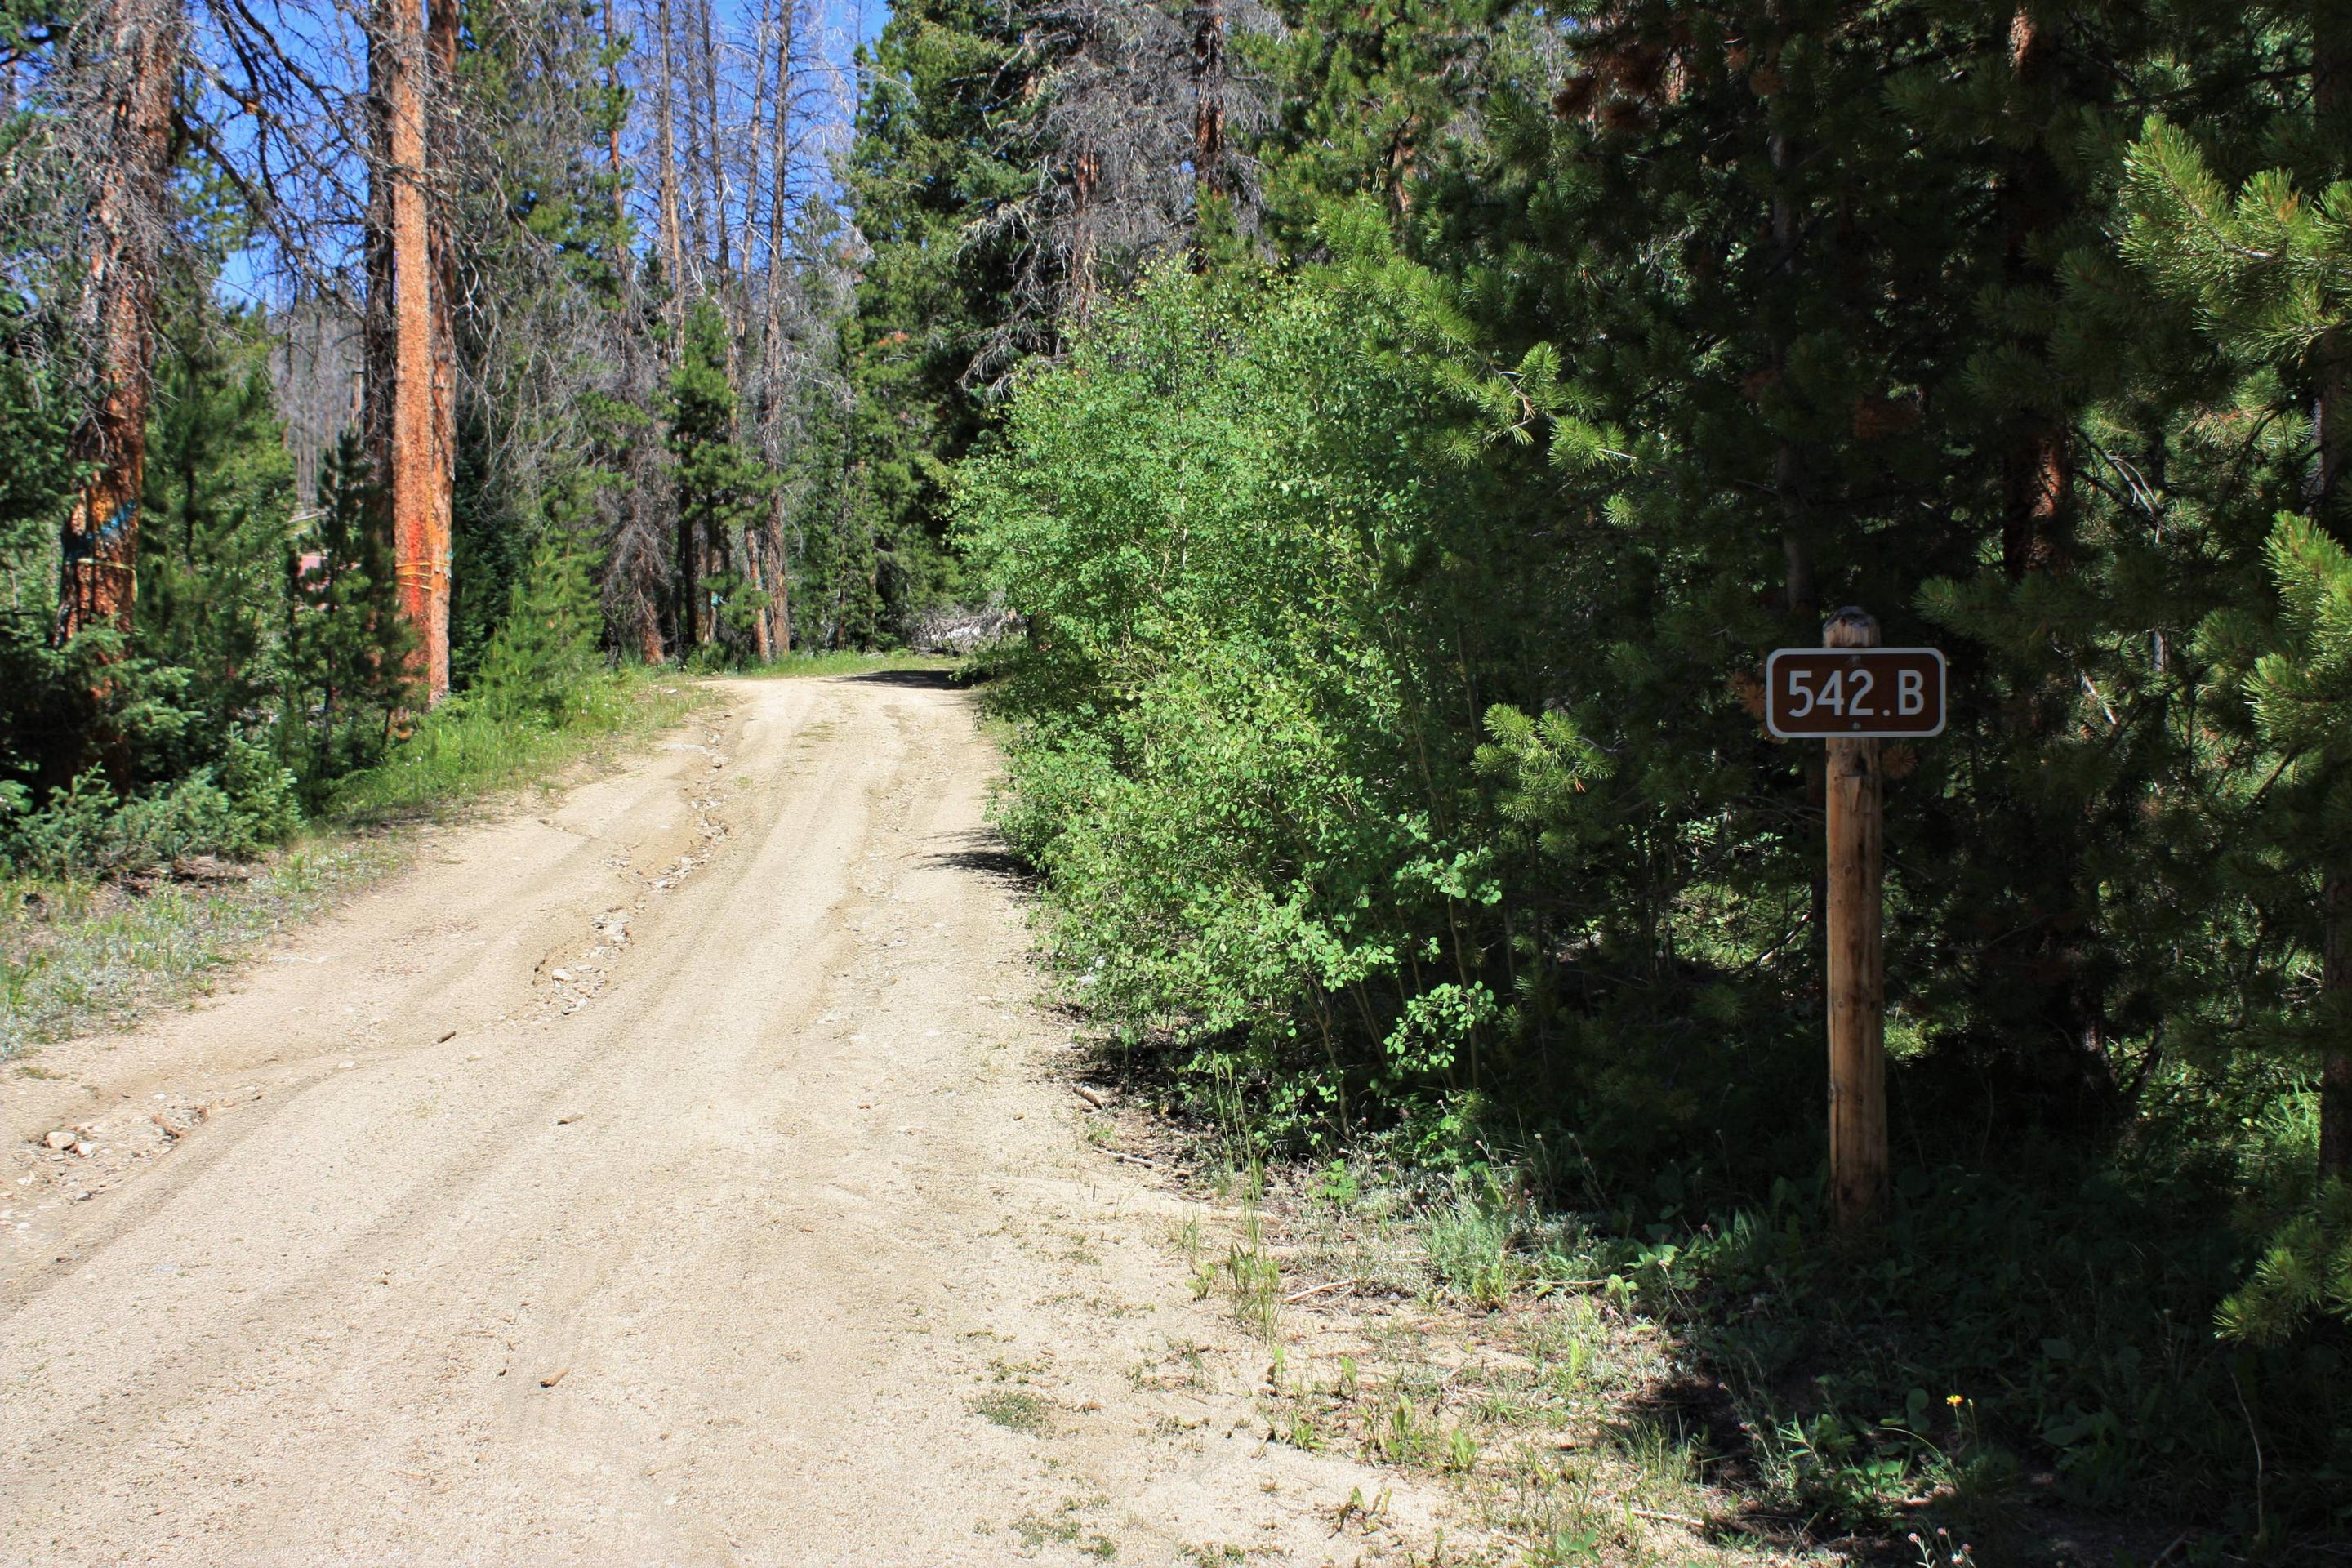 Keystone Ranger Station road sign